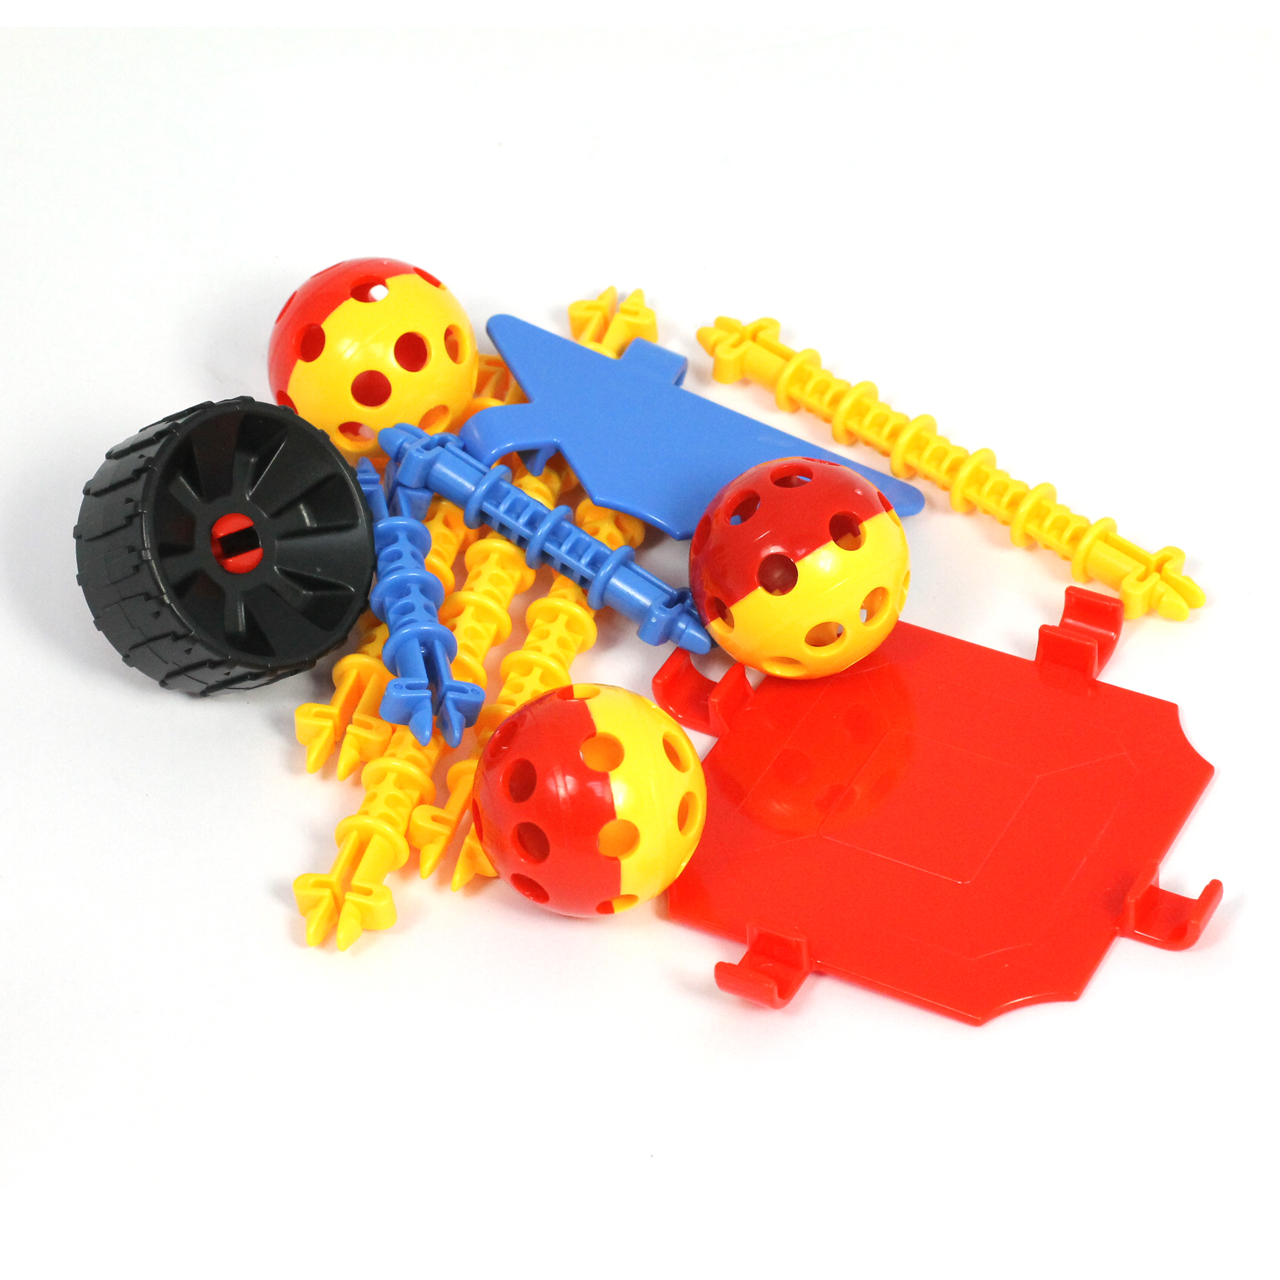 Space Construction Set 160 Piece